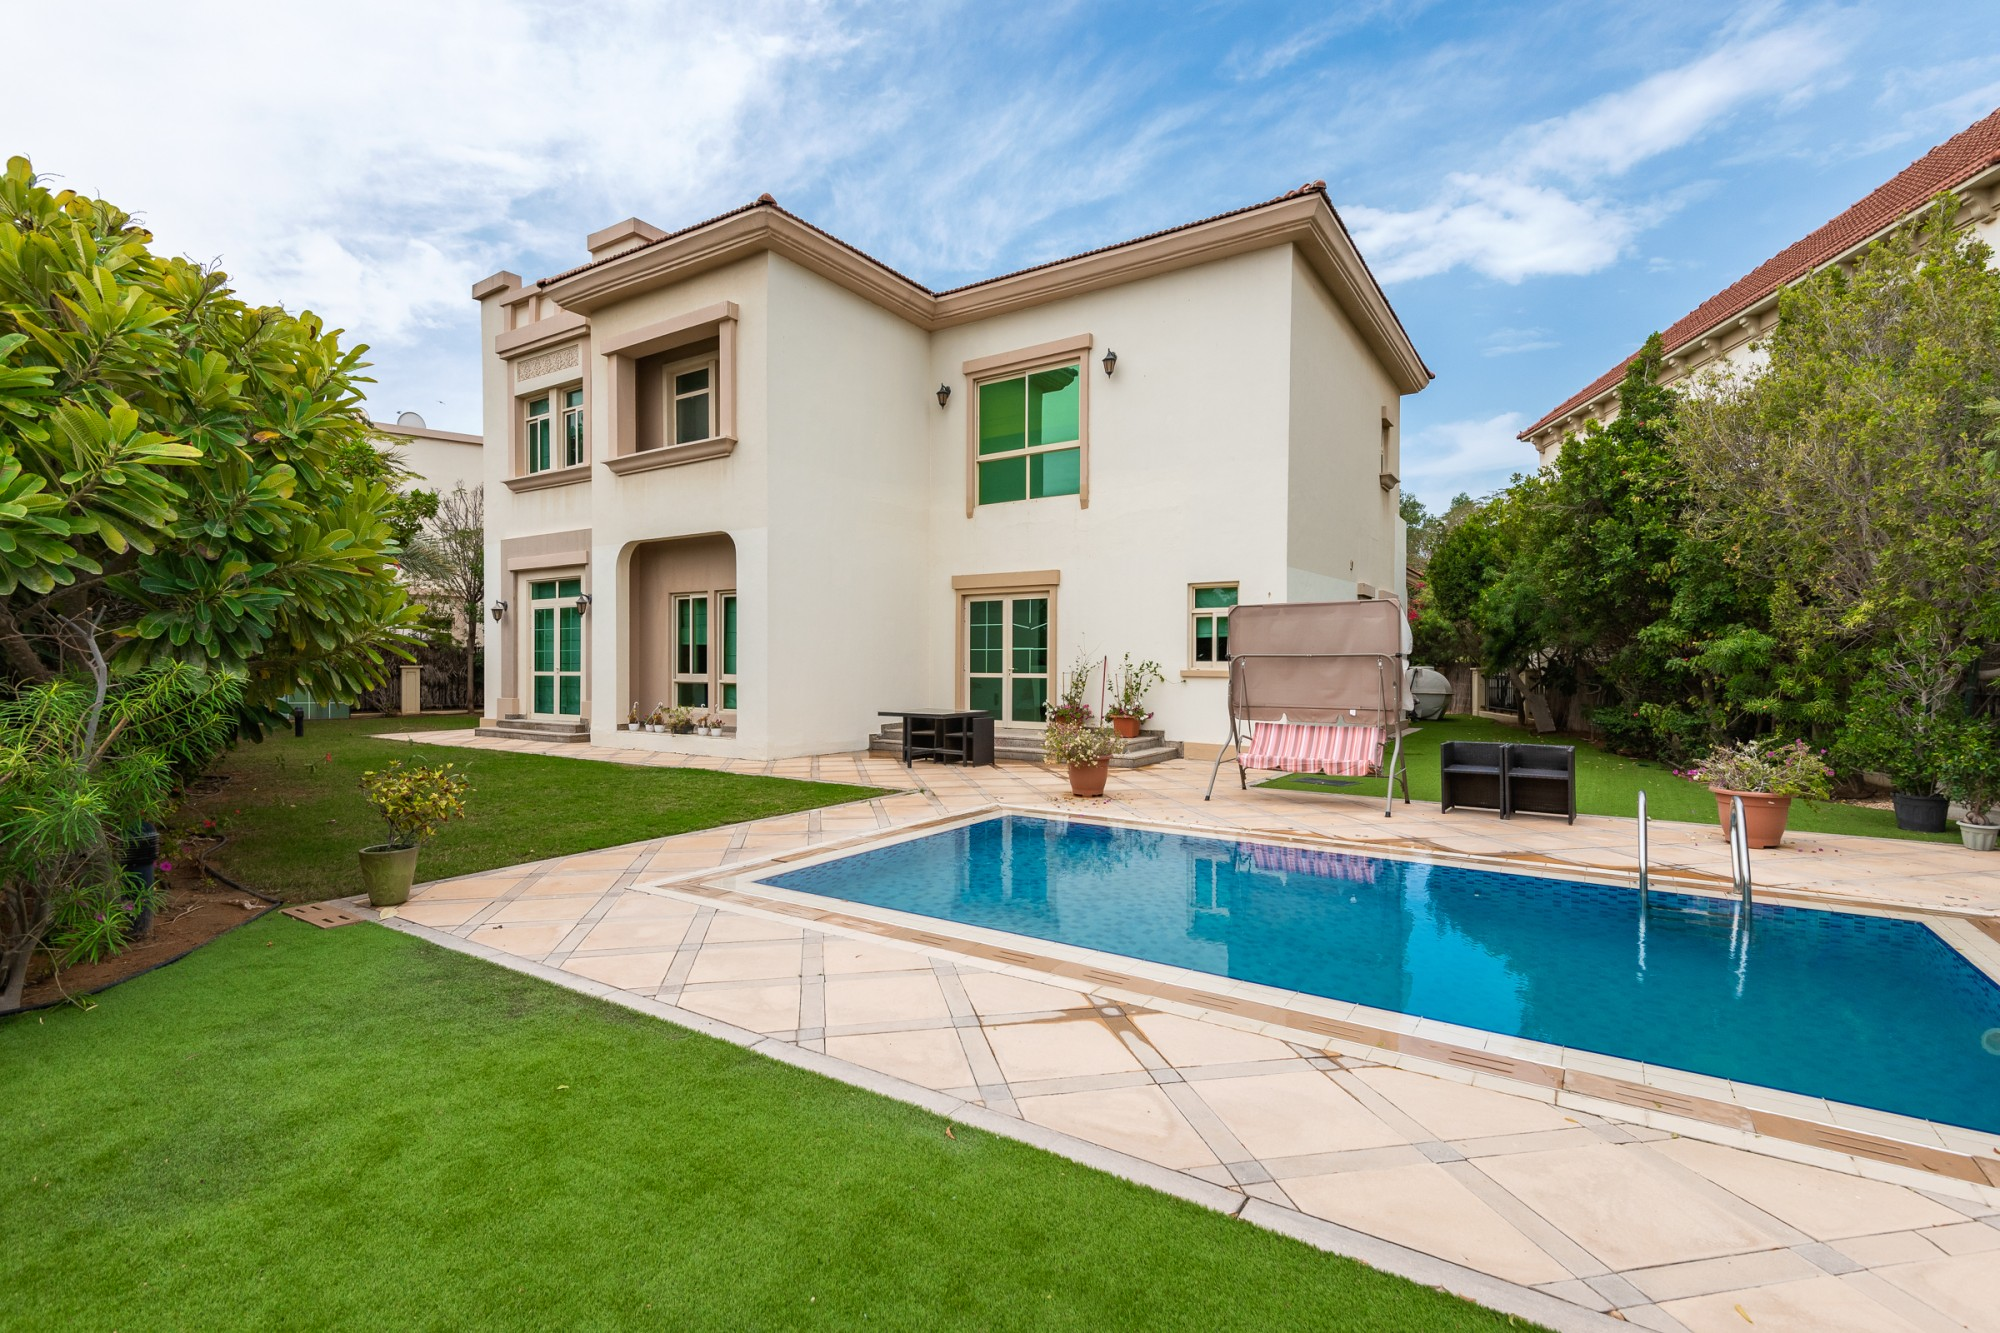 Immaculate Well Maintained 4 Bedroom EF Villa